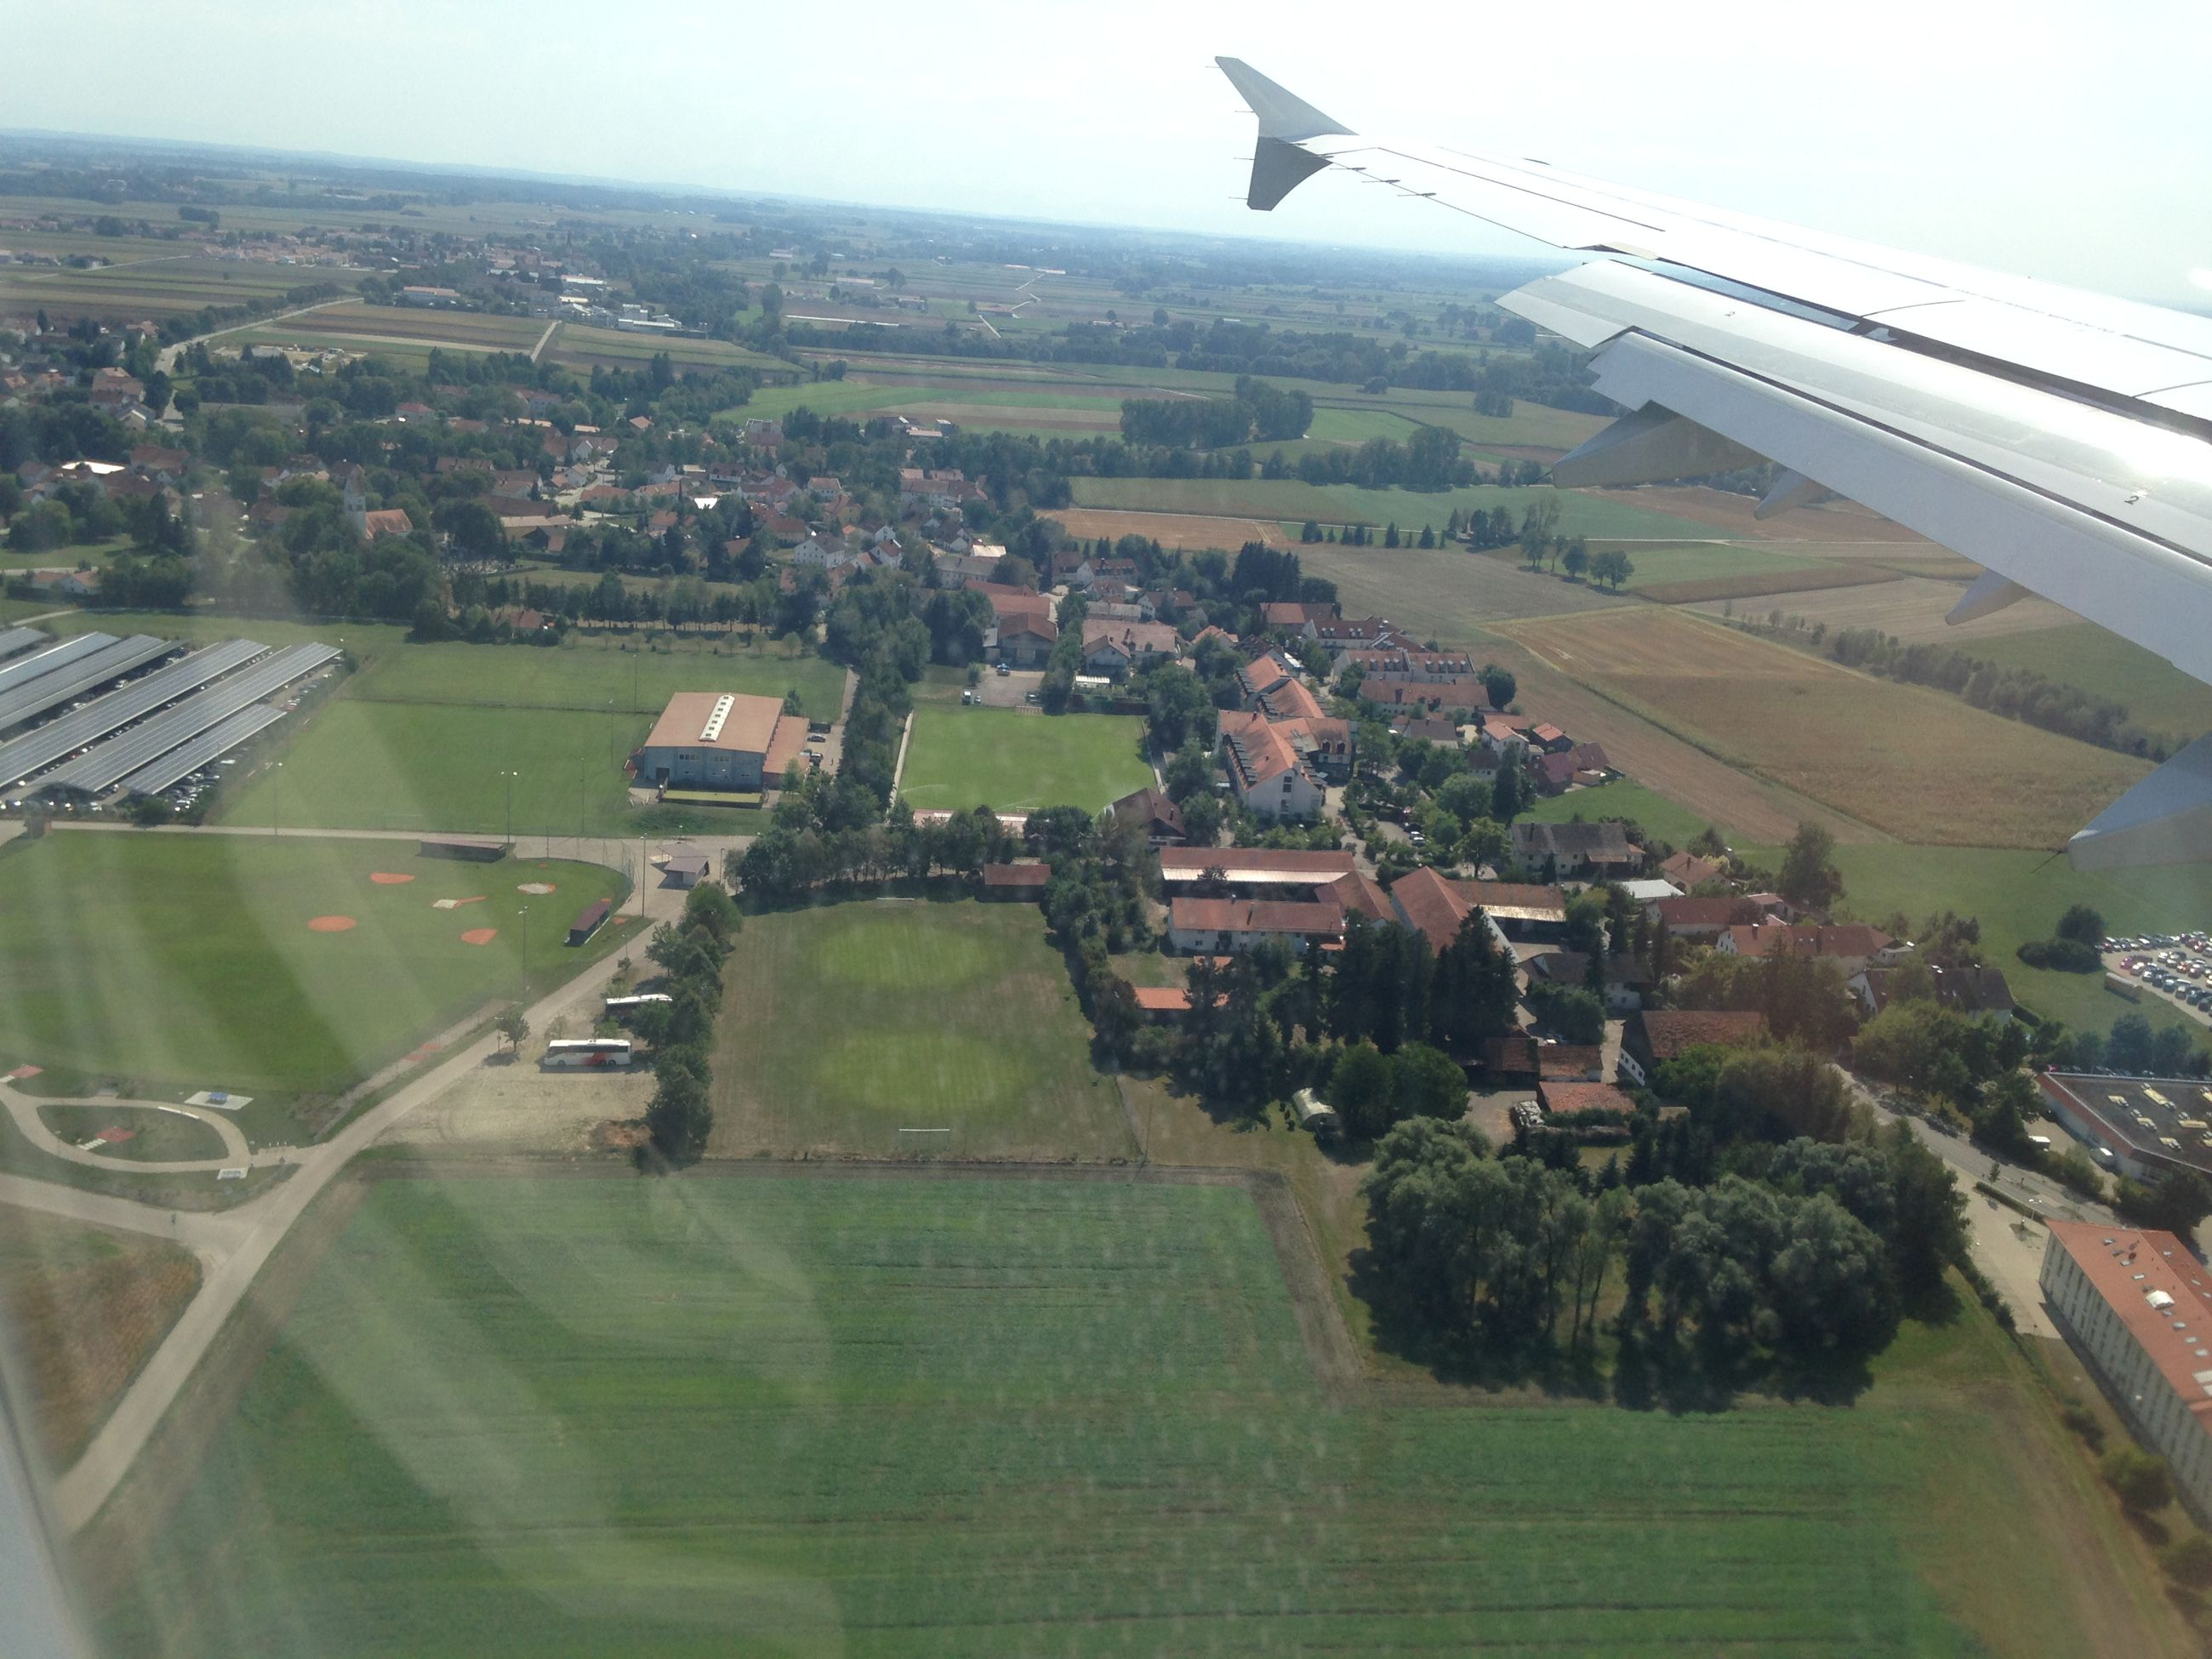 airplane, flying, air vehicle, transportation, mode of transport, aircraft wing, landscape, aerial view, public transportation, mid-air, on the move, travel, part of, journey, cropped, field, rural scene, sky, nature, scenics